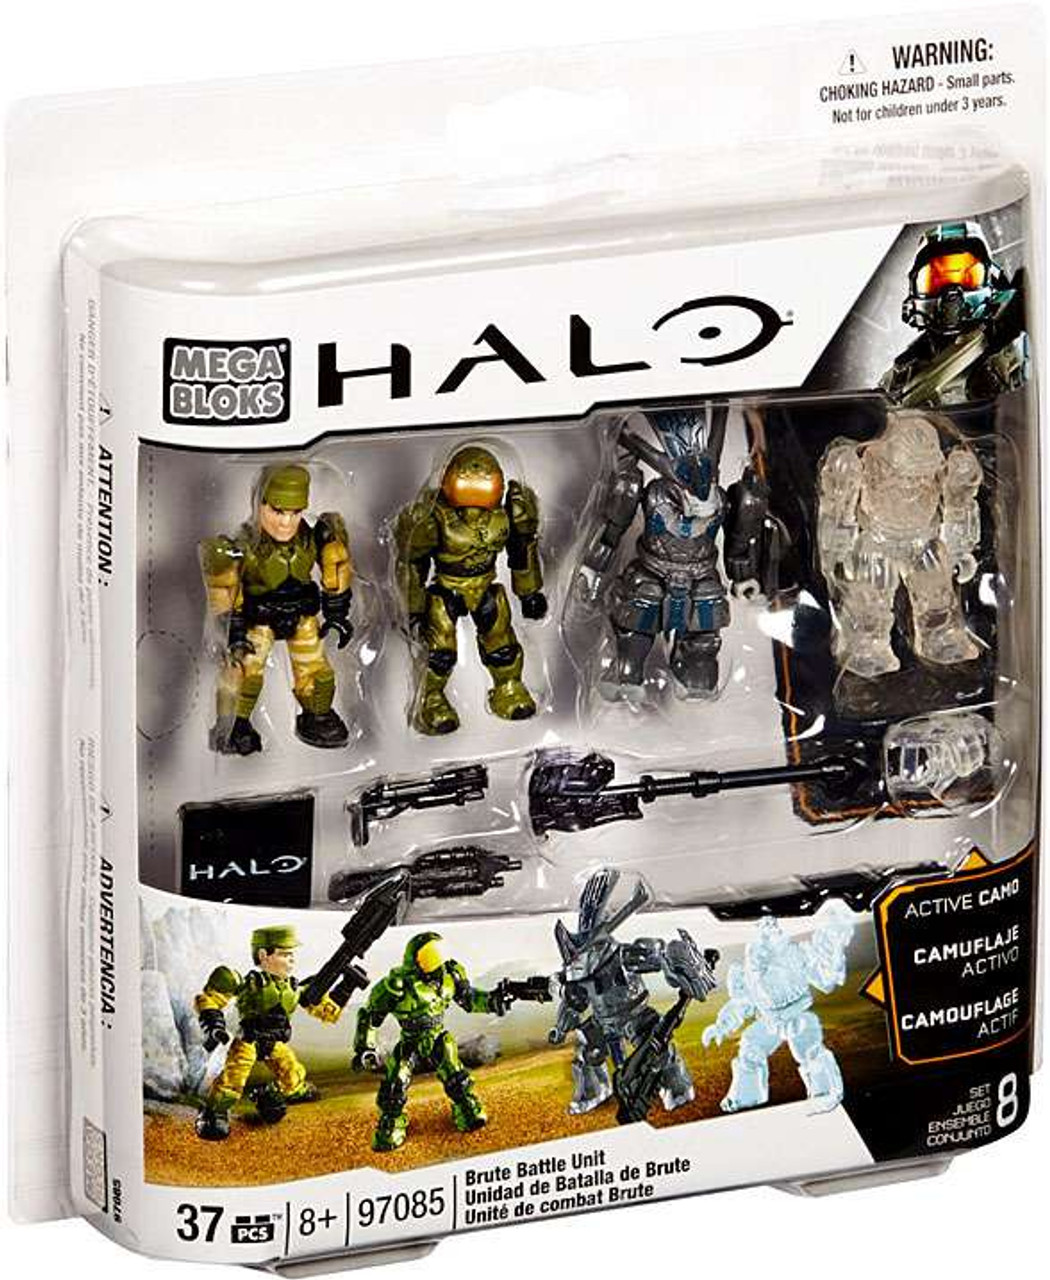 Mega Bloks Halo Brute Battle Pack Set #97085 [Damaged Package]